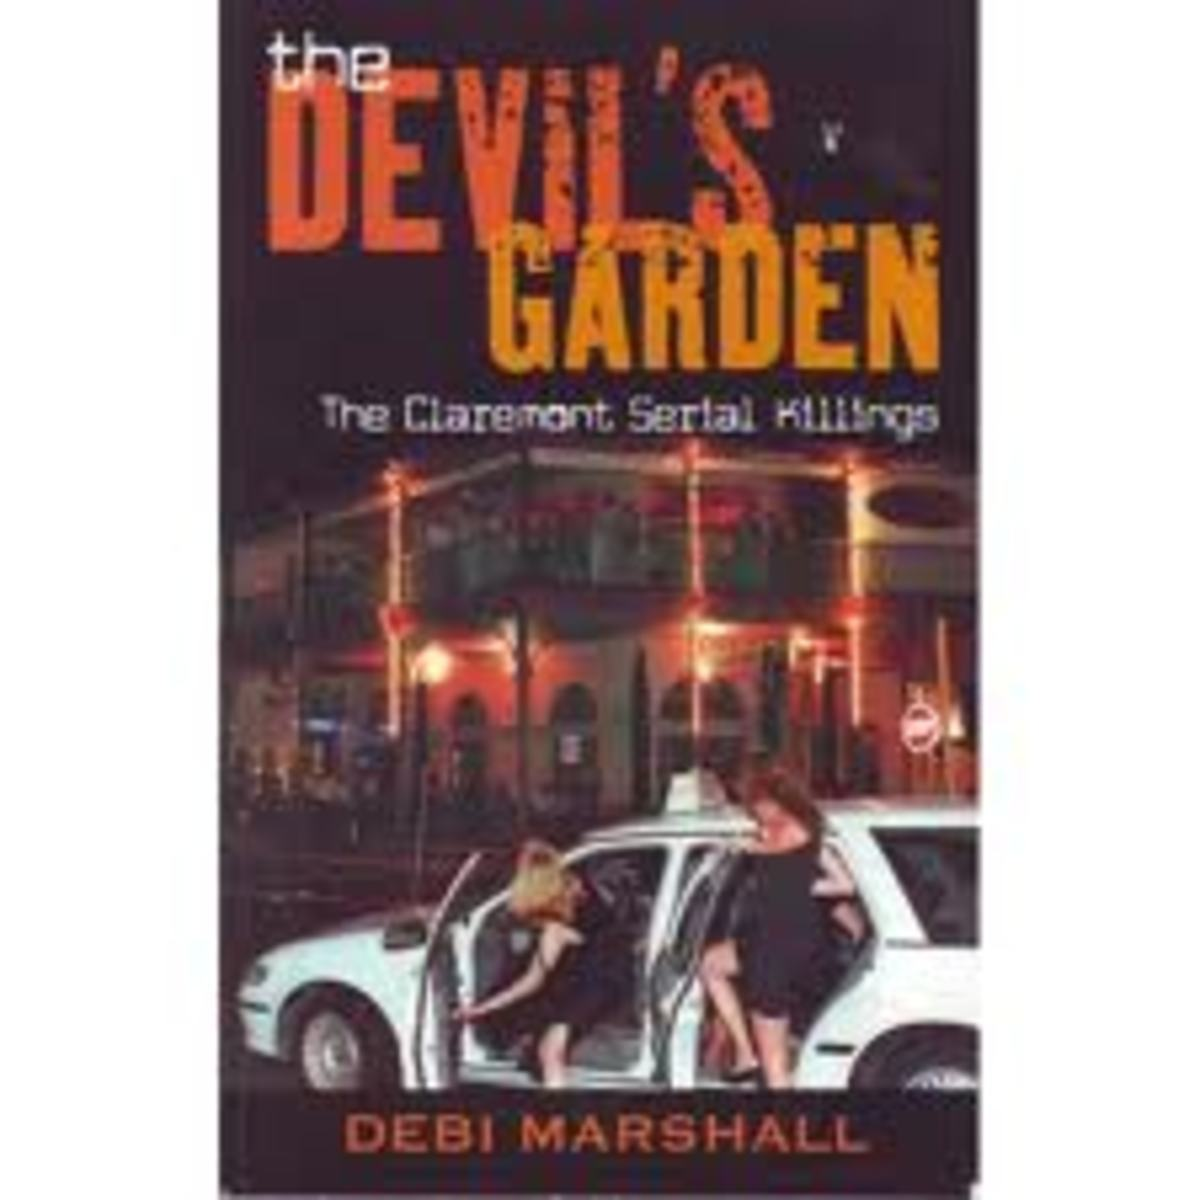 The Devil's Playground- The Claremont Serial Killings by Debi Marshall